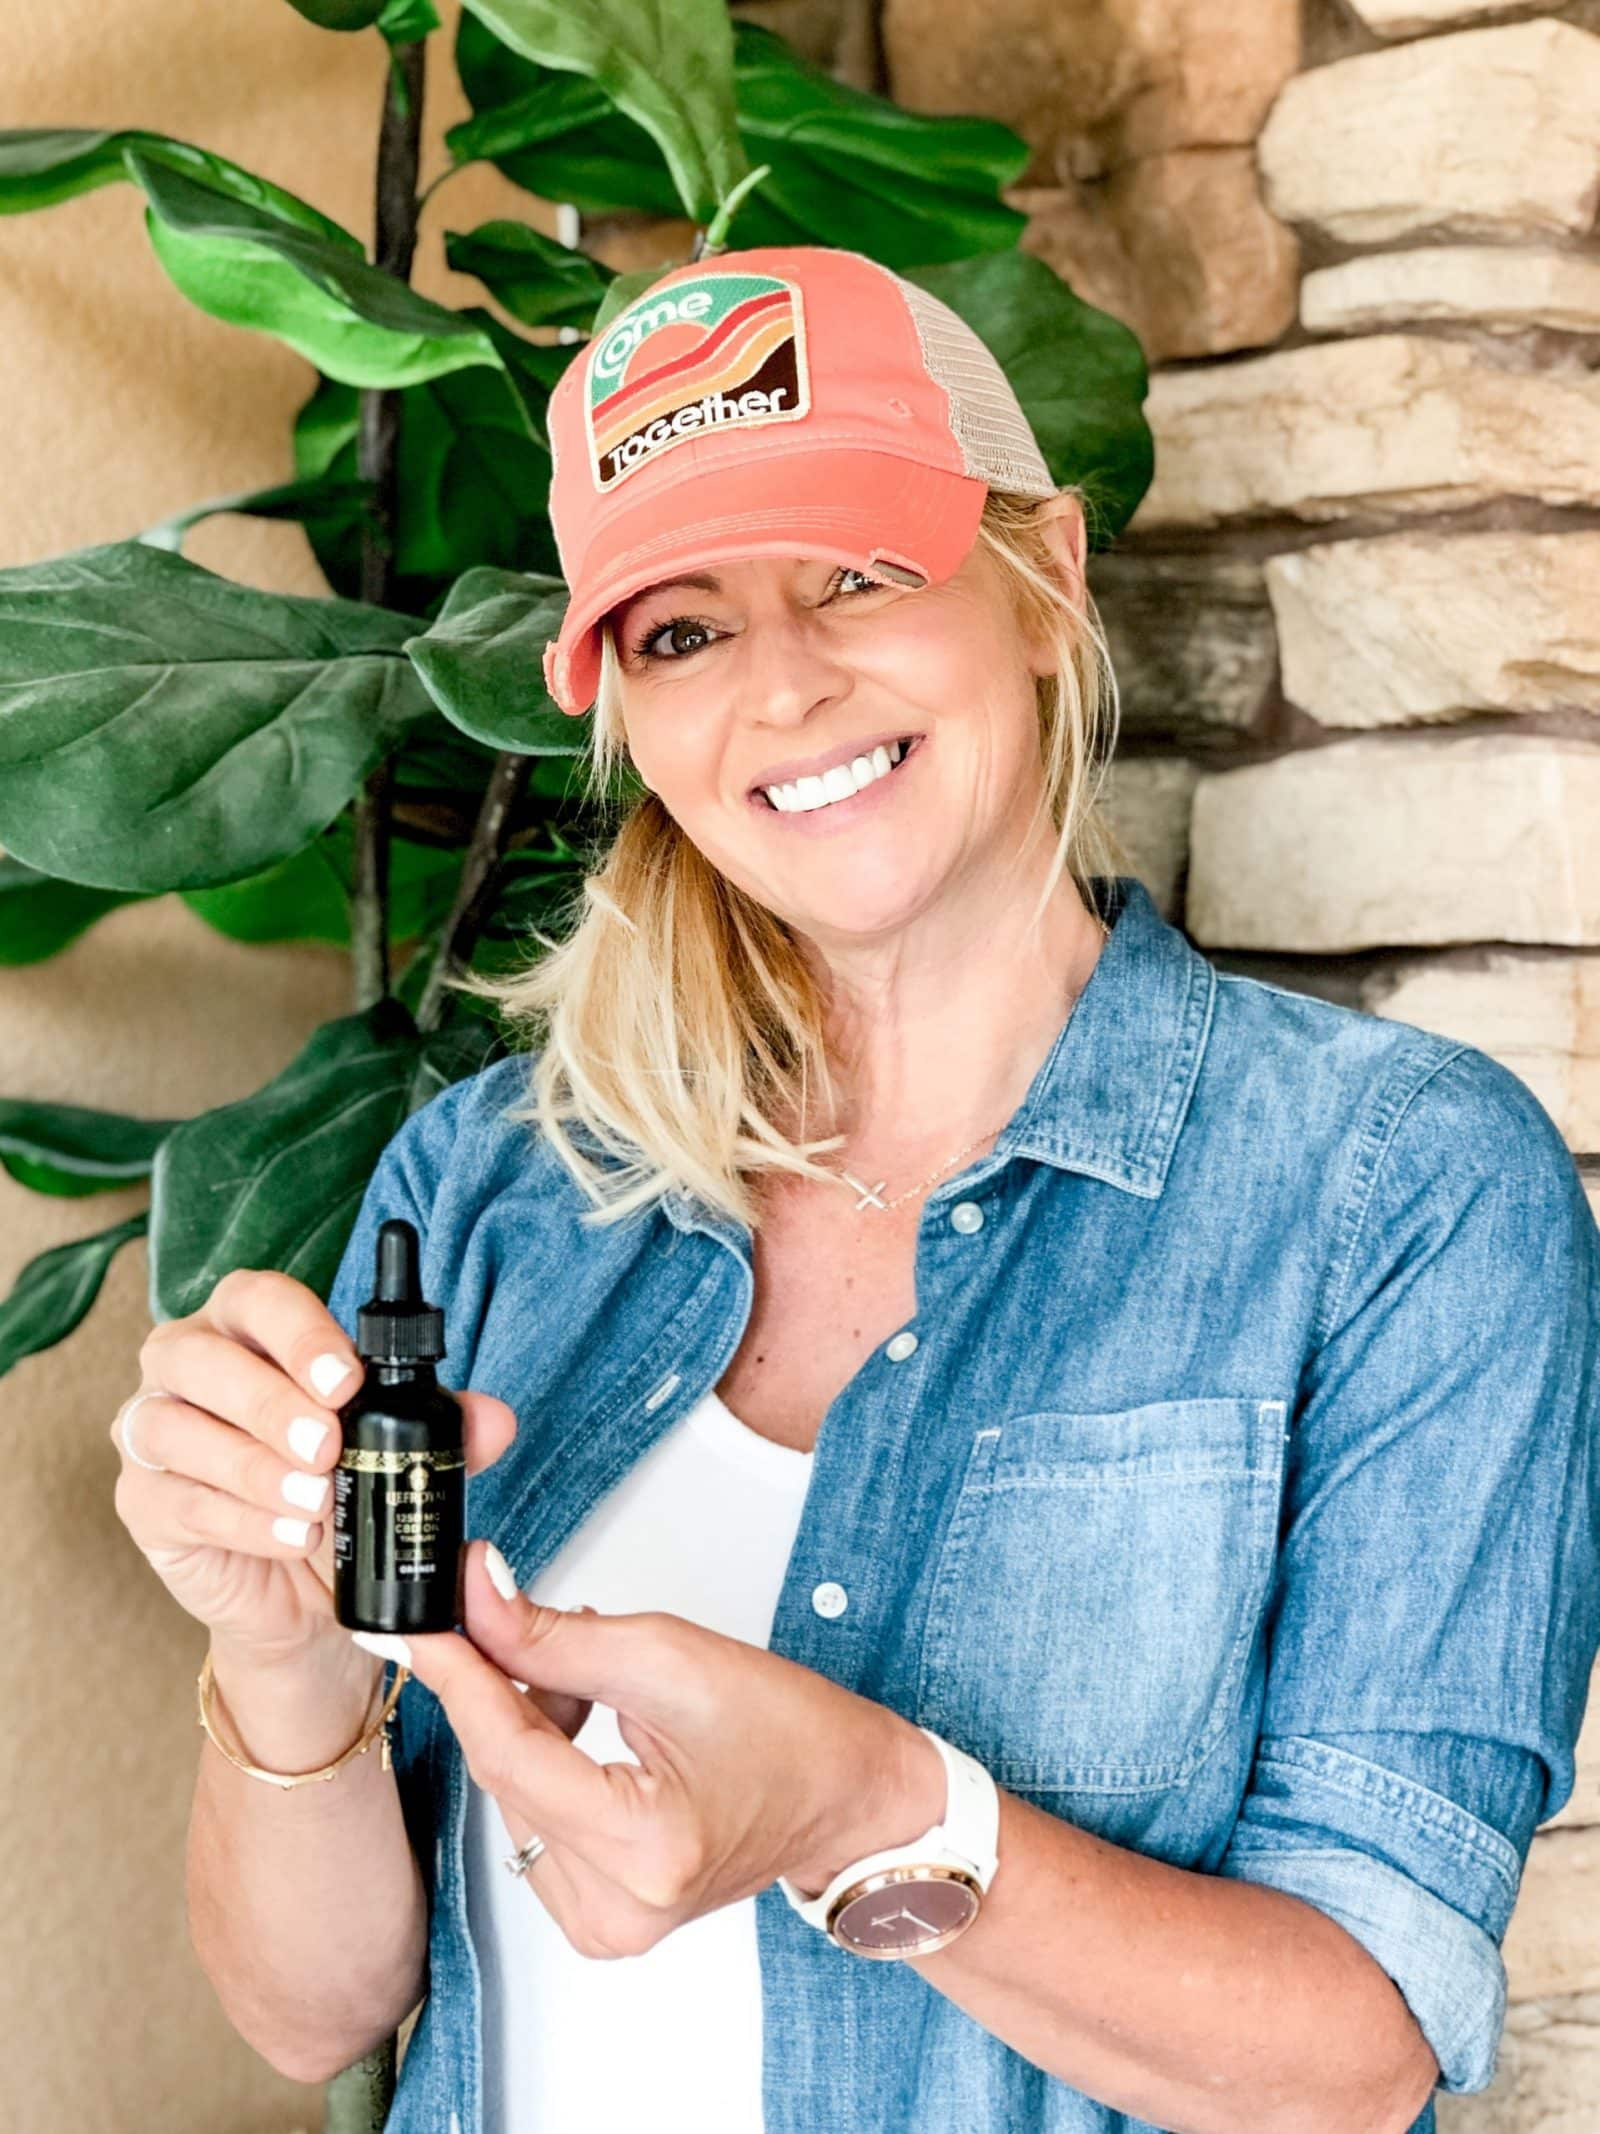 Using CBD oil over 40. Everything you need to know about using CBD Oil.